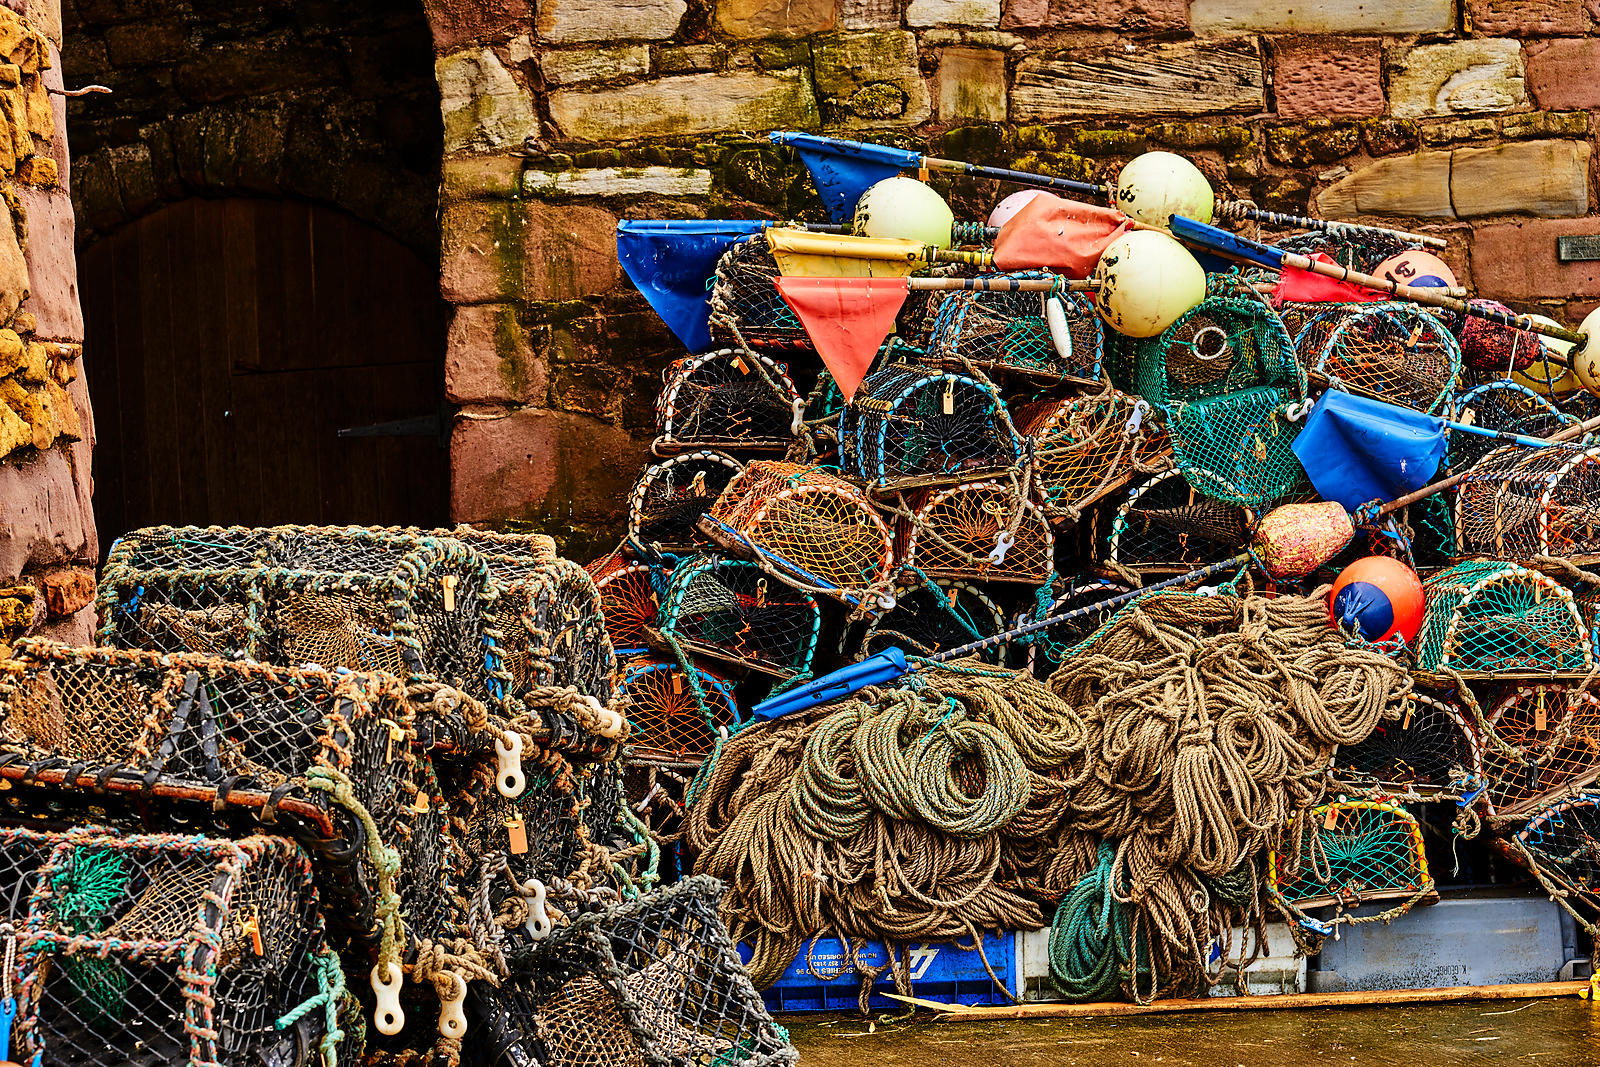 More lobster pots